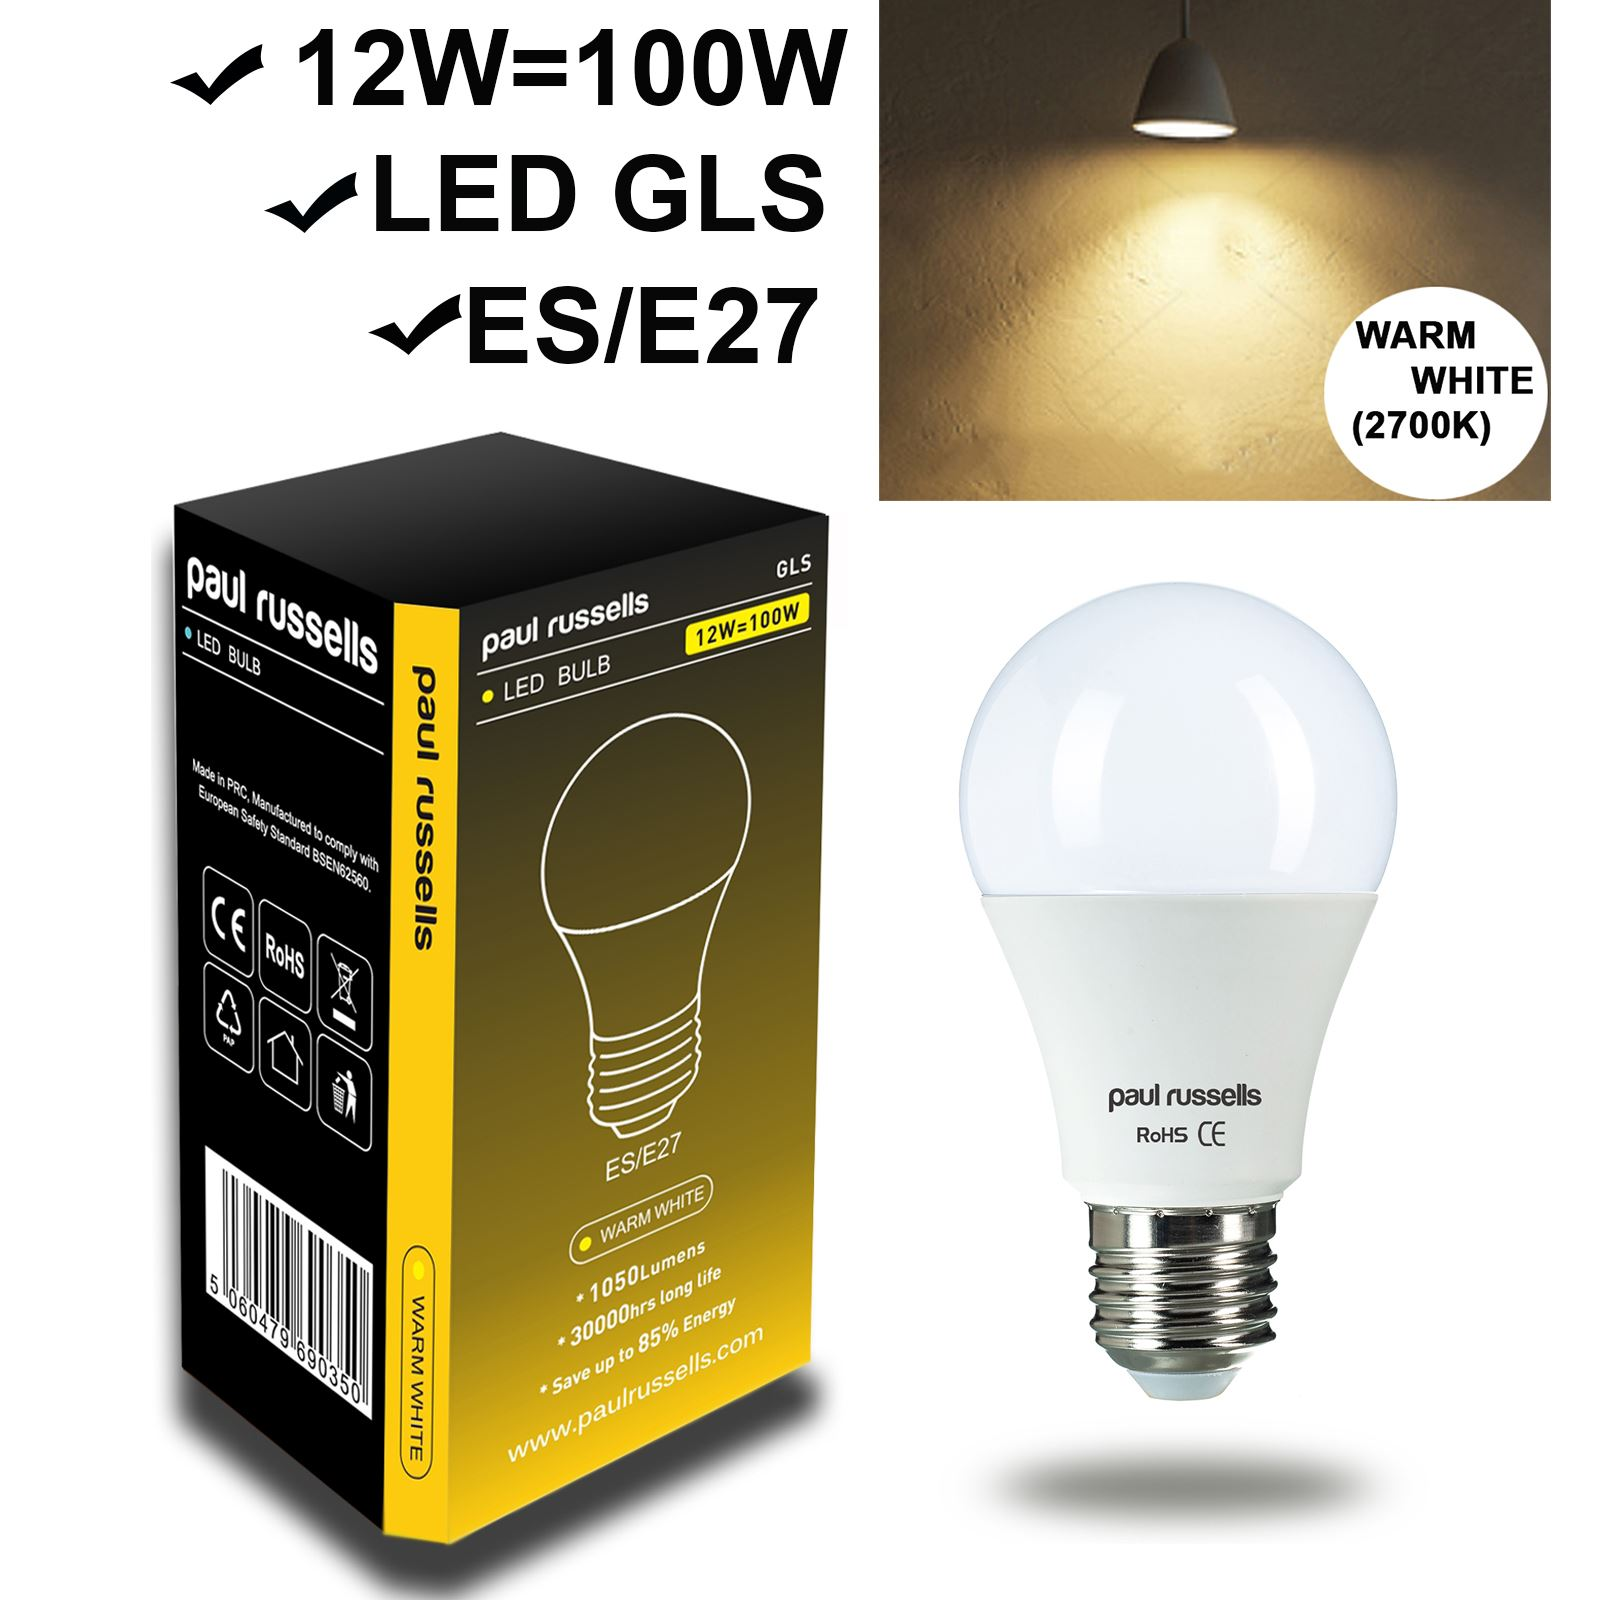 5w 7w 12w led 40 60w 100w e27 b22 gls lamp light bulbs warm cool day white ebay. Black Bedroom Furniture Sets. Home Design Ideas